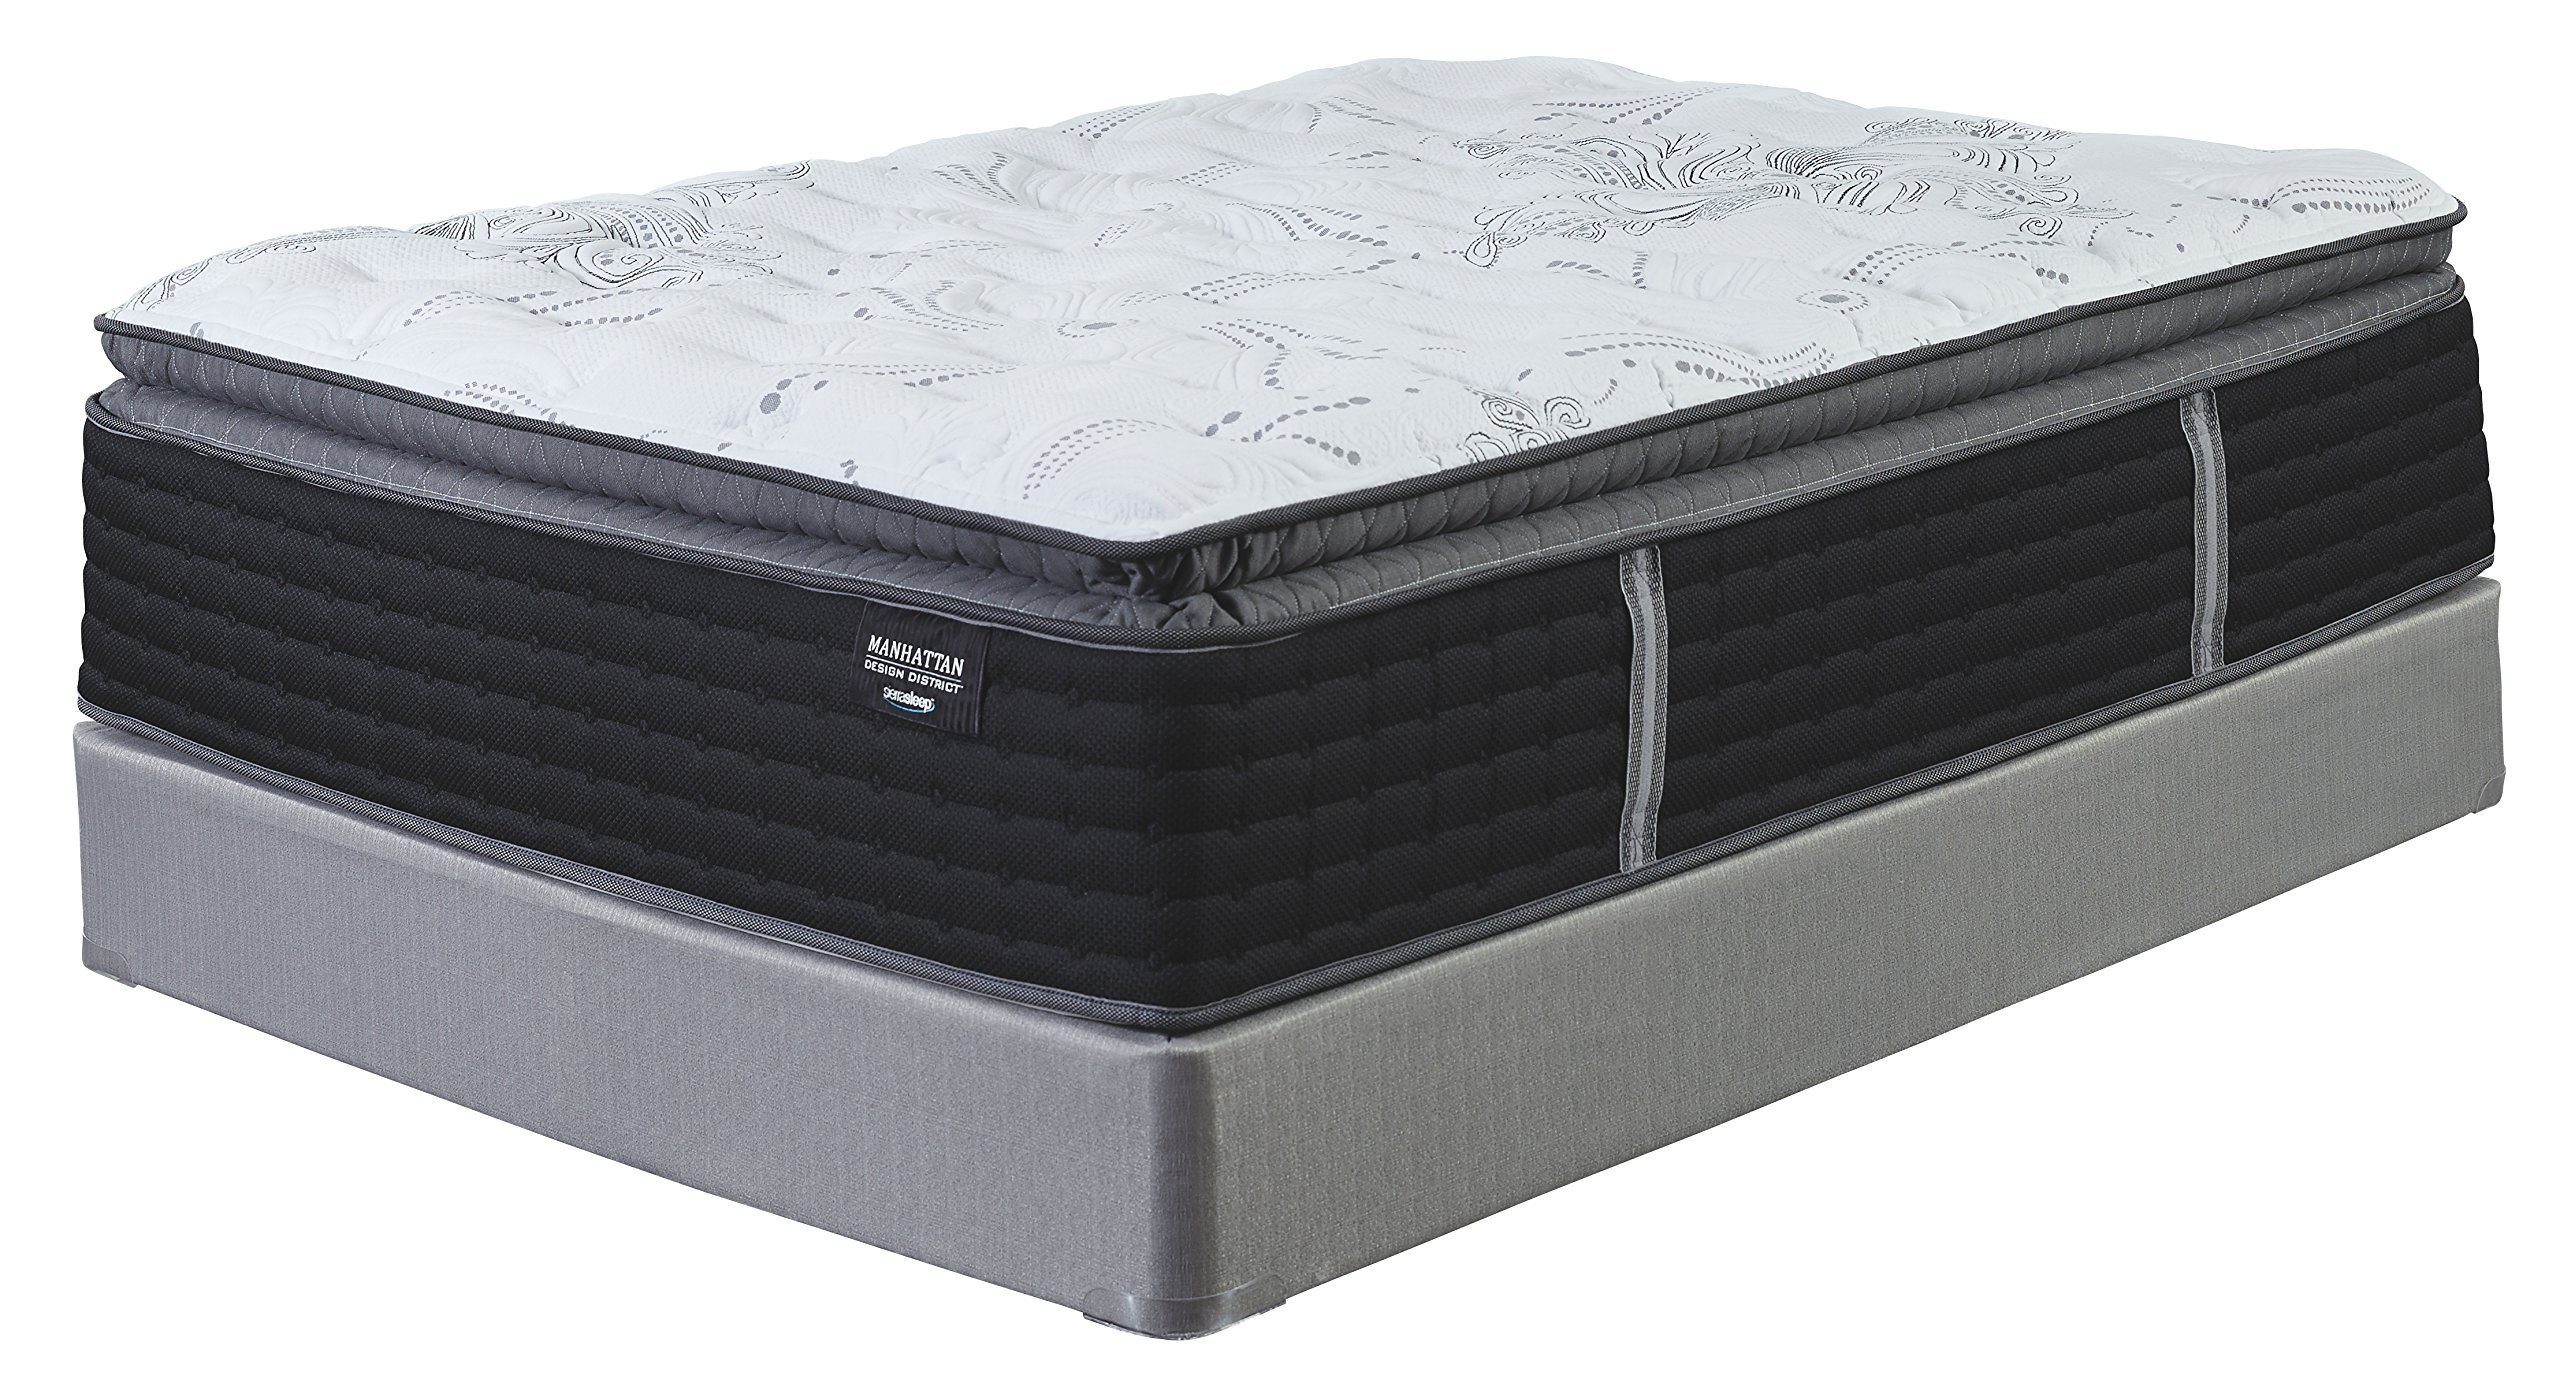 Ashley Furniture Signature Design - Sierra Sleep - Manhattan Design District Plush Pillowtop Mattress - Traditional Cal King Size Mattress - White